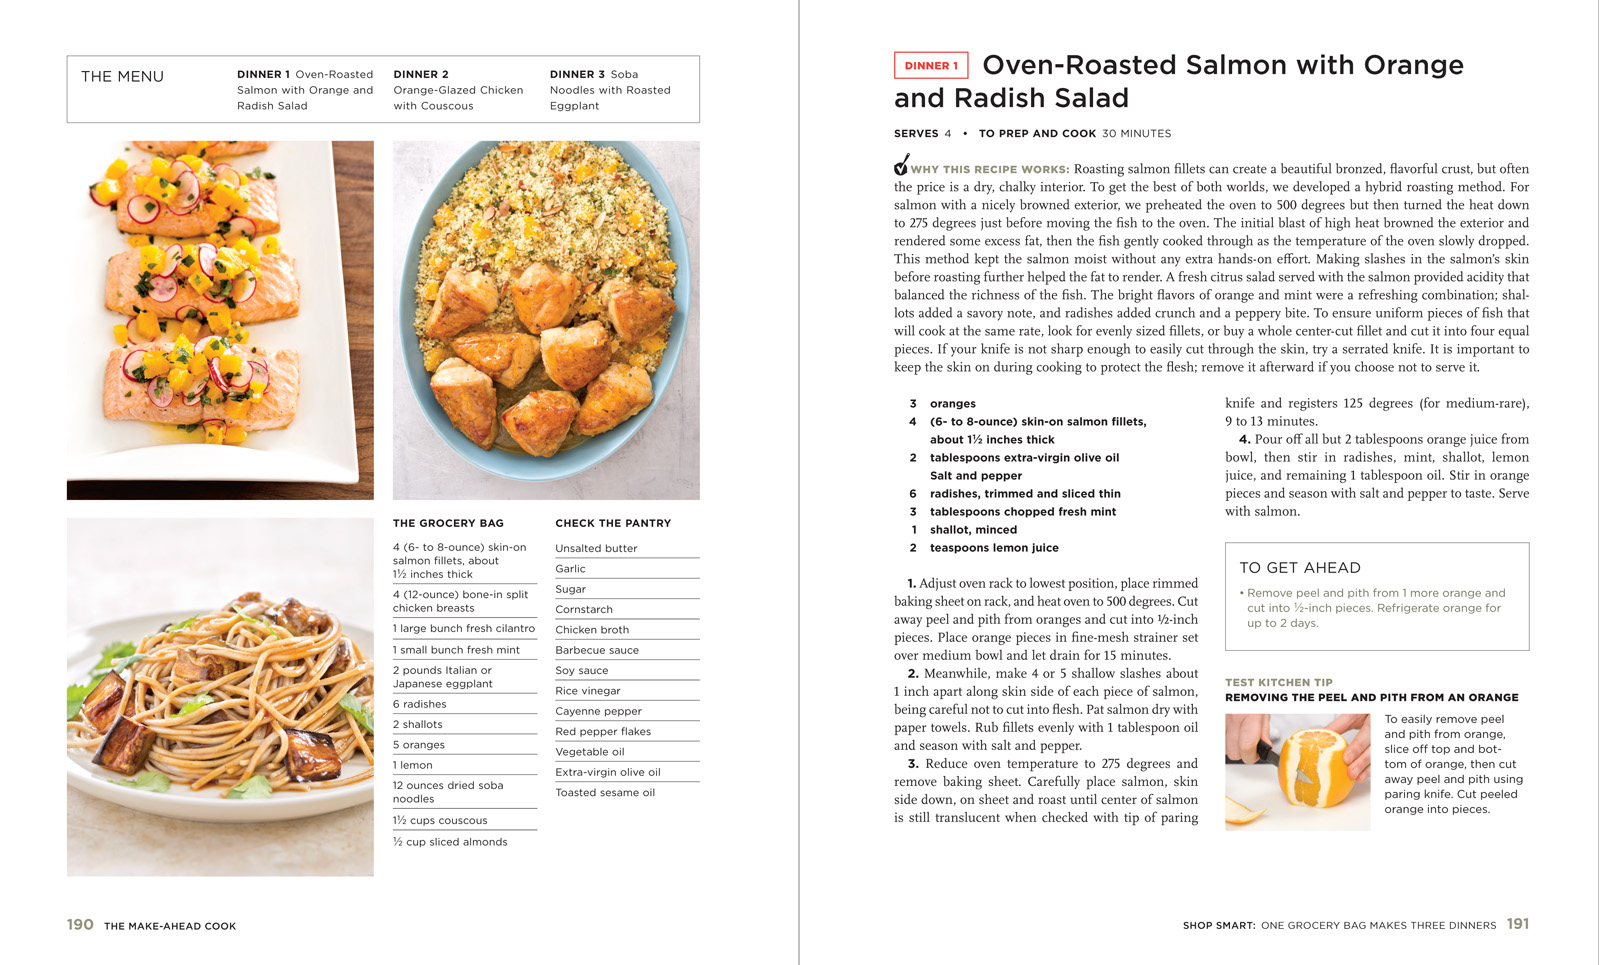 Inside the Book – The Make-Ahead Cook